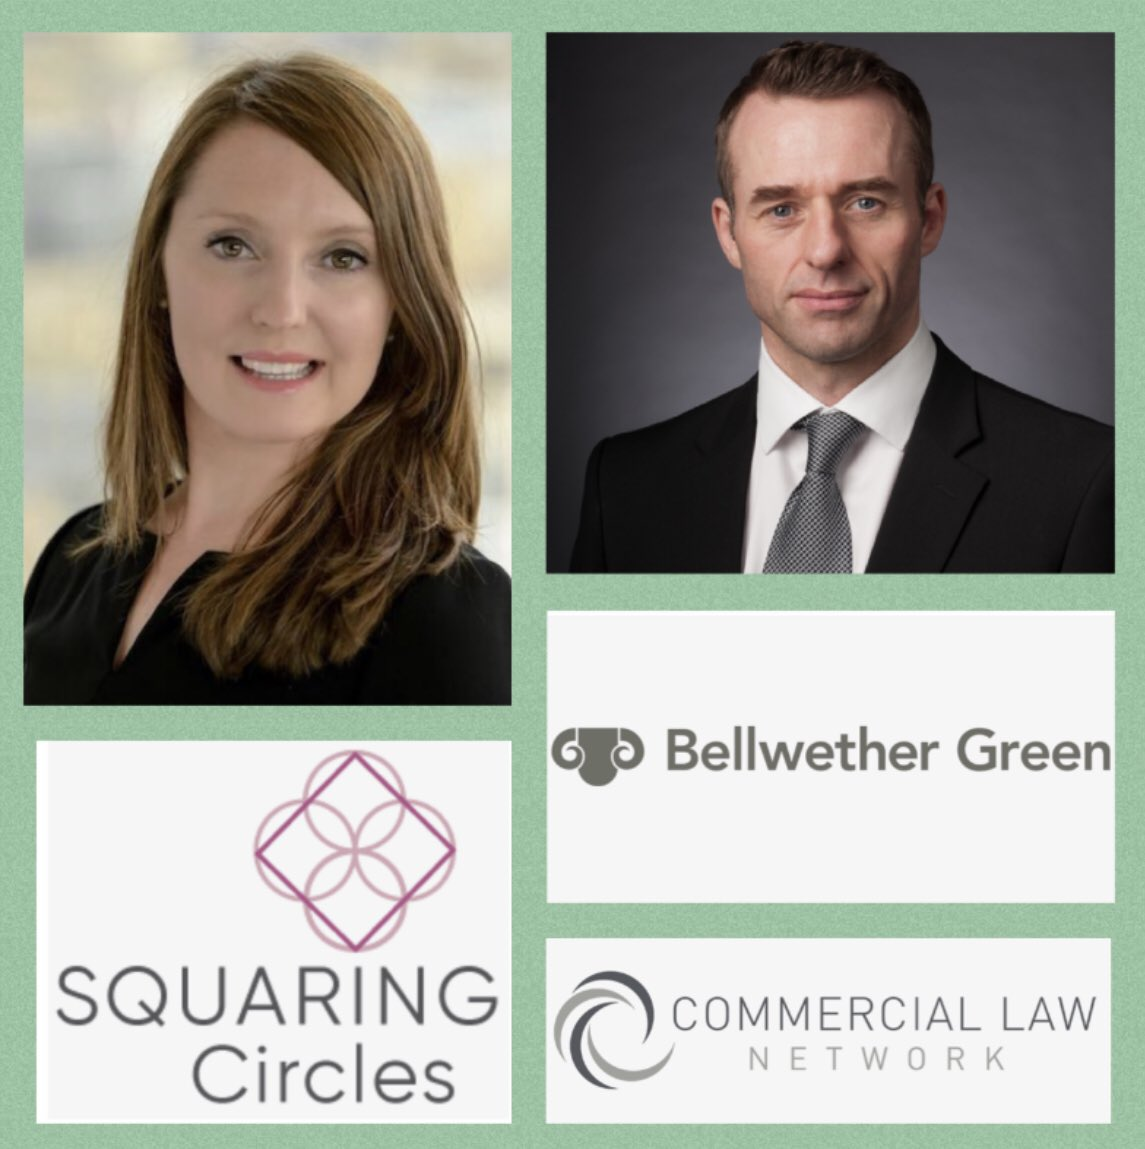 🚨DAY 2 OF LITIGATION WEEK🚨 Alternative Dispute Resolution. Yeah we know, taboo for us hardened litigators but we've secured the fabulous @rachaelbicknell @CirclesSquaring + John Bingham @bellwethergreen to show why #ADR is a client must! Email michelle.moran@bellwethergreen.com https://t.co/JpQlbTo8xO